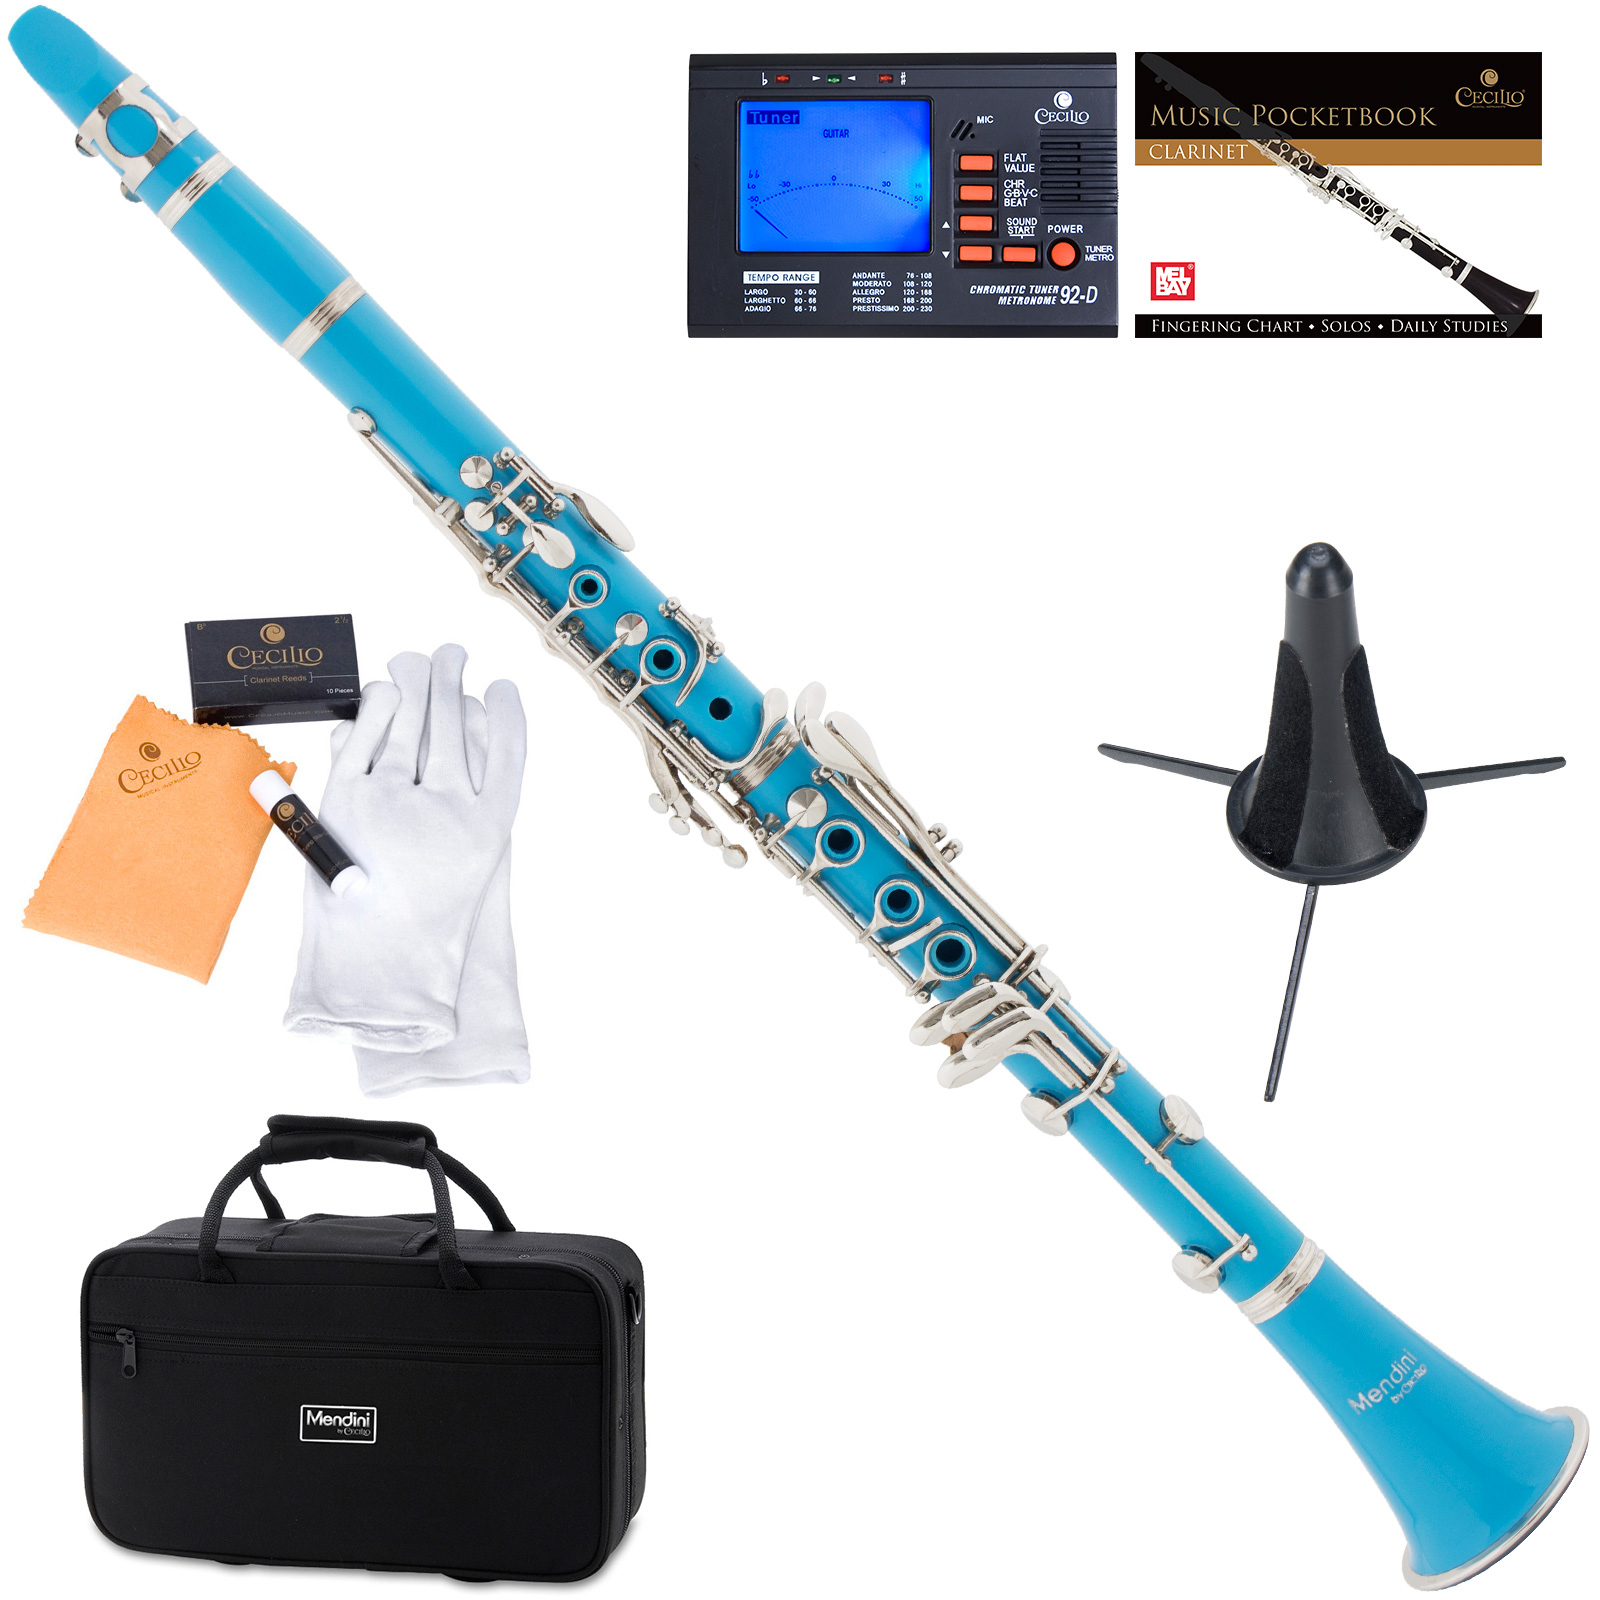 Mendini by Cecilio MCT-SB Sky Blue ABS Bb Clarinet w/1 Year Warranty, Stand, Tuner, 10 Reeds, Pocketbook, Mouthpiece, Case, B Flat